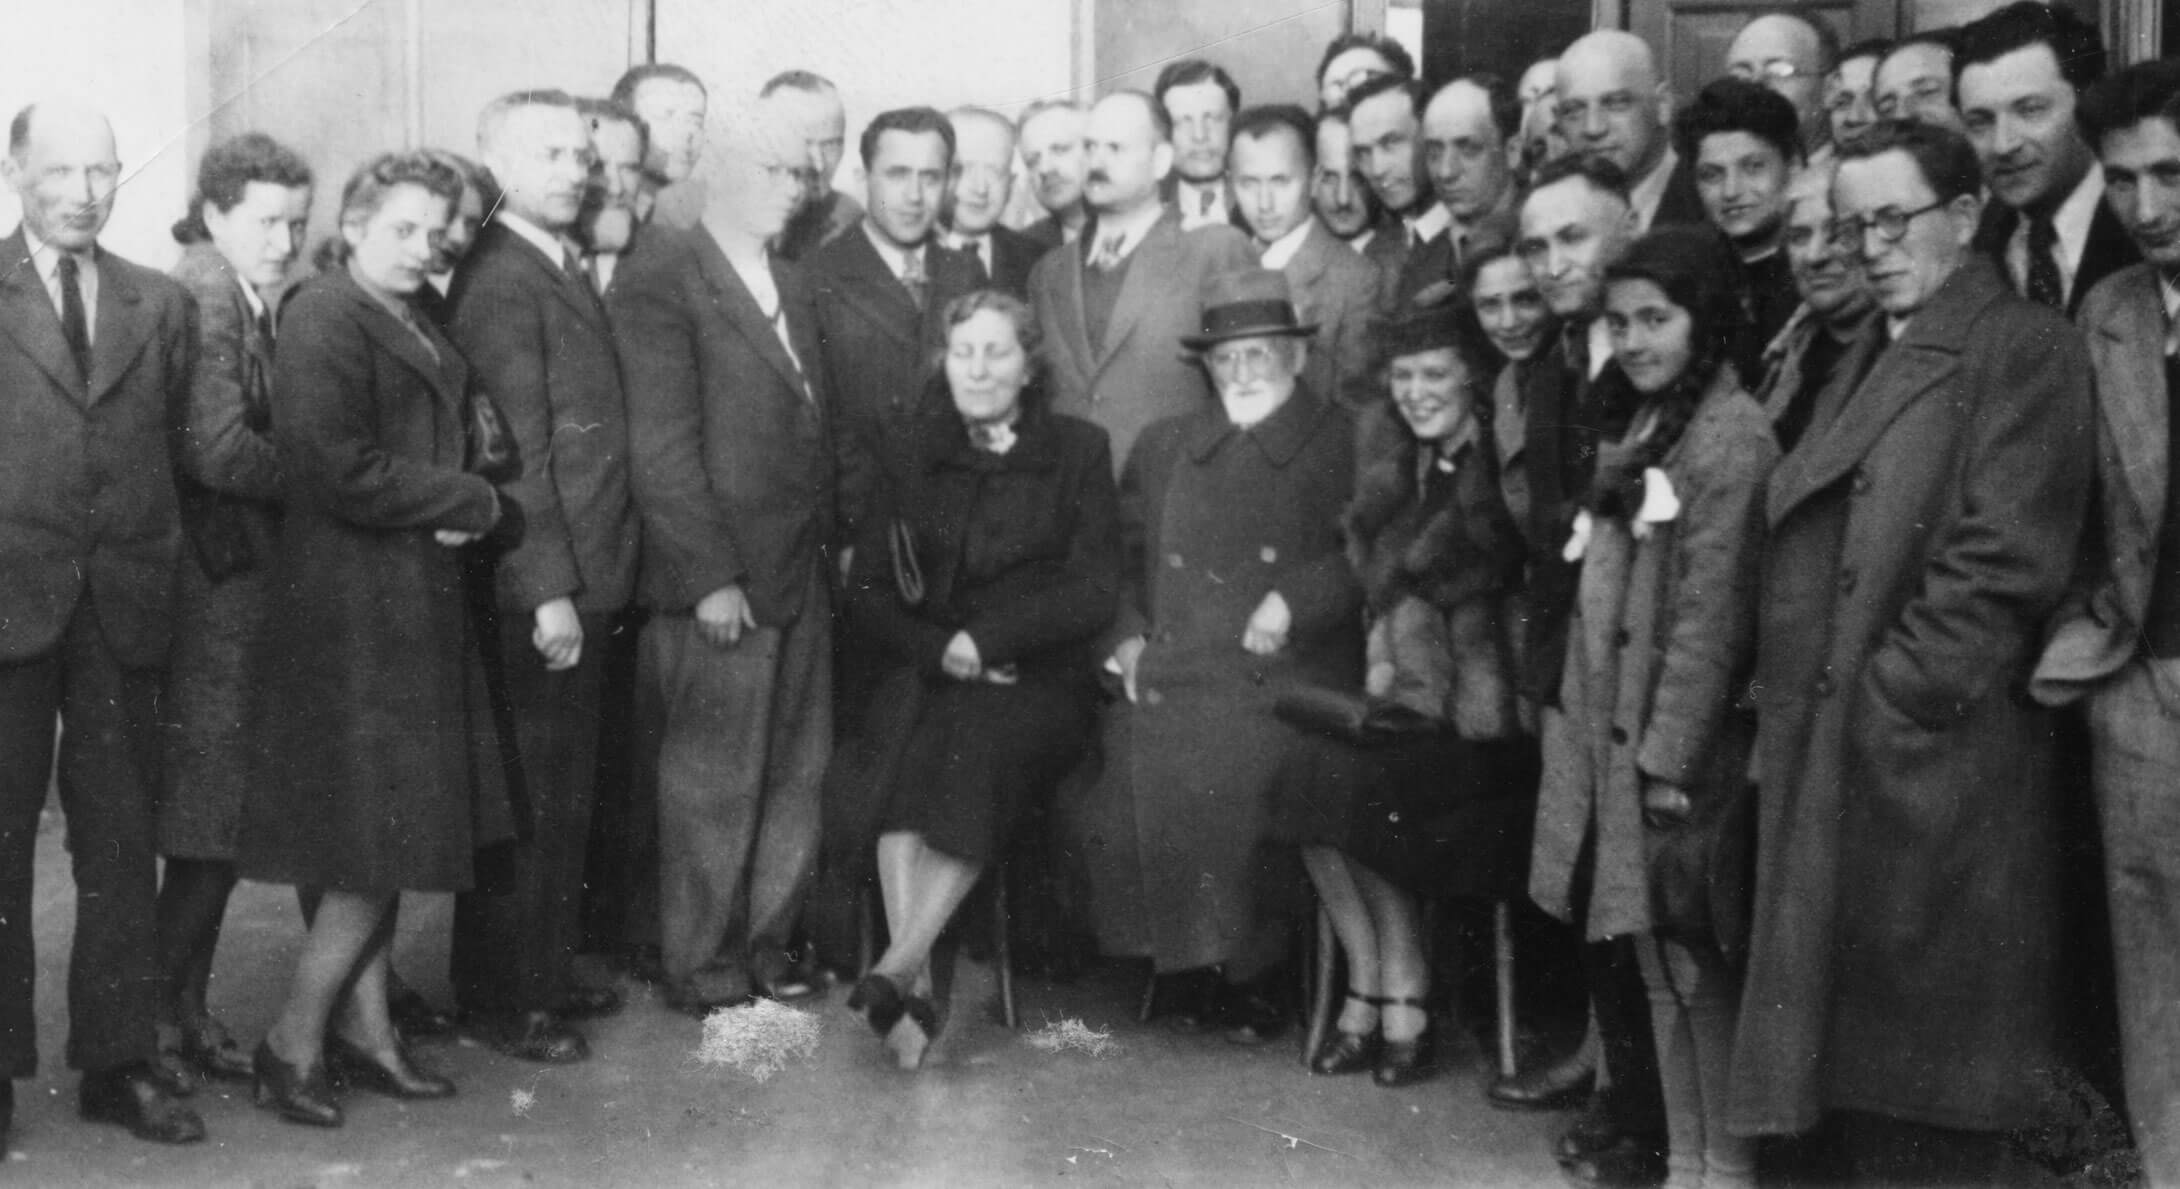 Historian Simon Dubnow posing with a group of Jewish refugee writers during his visit to the refugee shelter